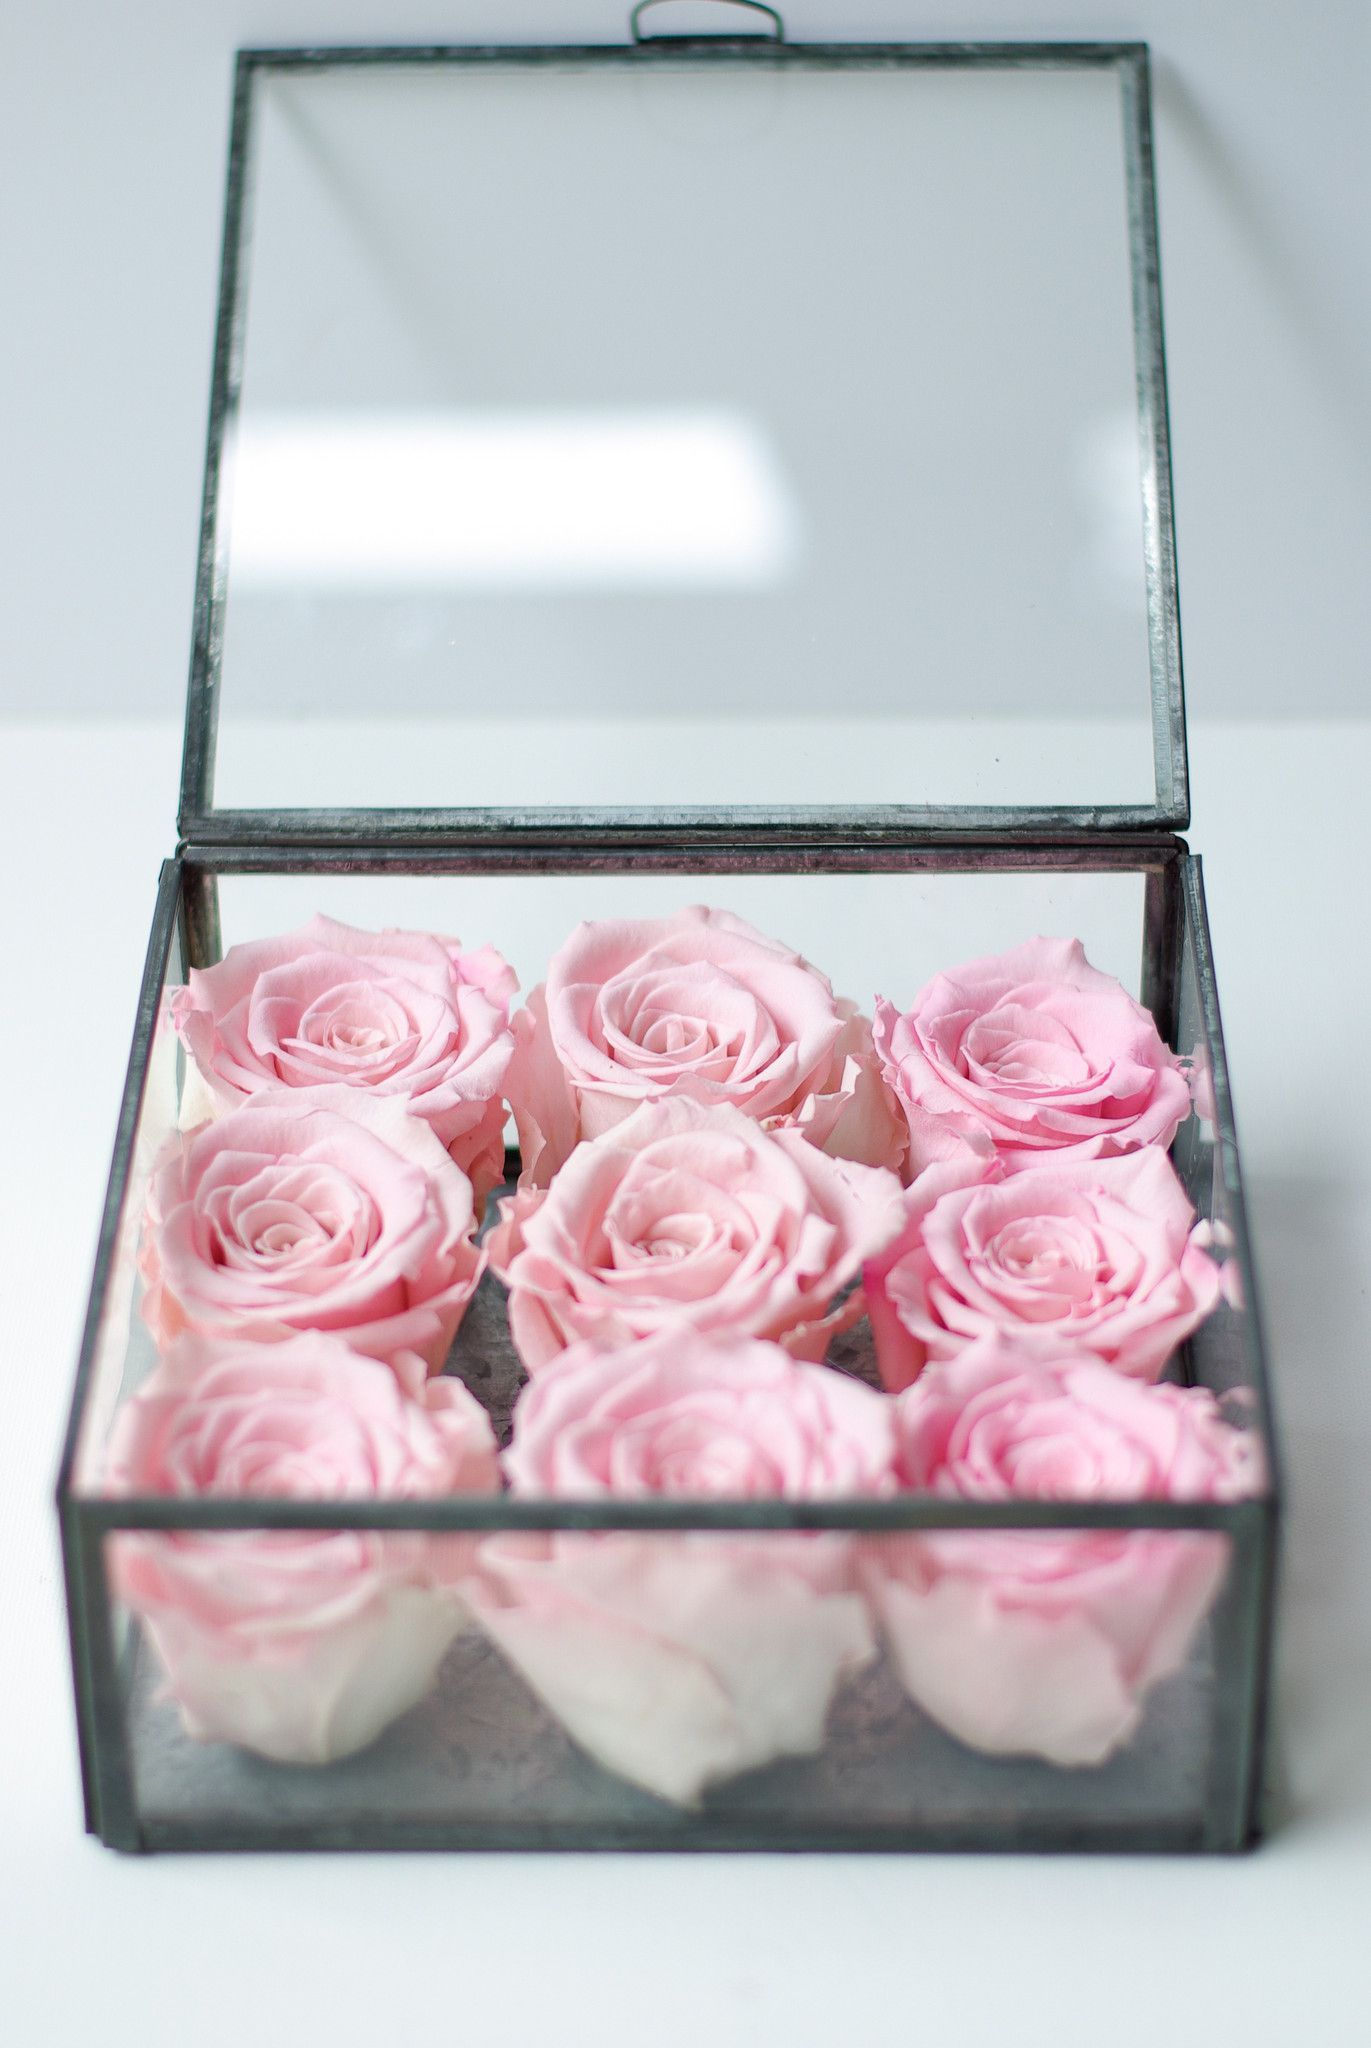 A Gift Of Roses Like Never Before Preserved Real Roses Arranged In A Glass Box To Enjoy For Year Preserved Roses Arrangement How To Preserve Flowers Box Roses